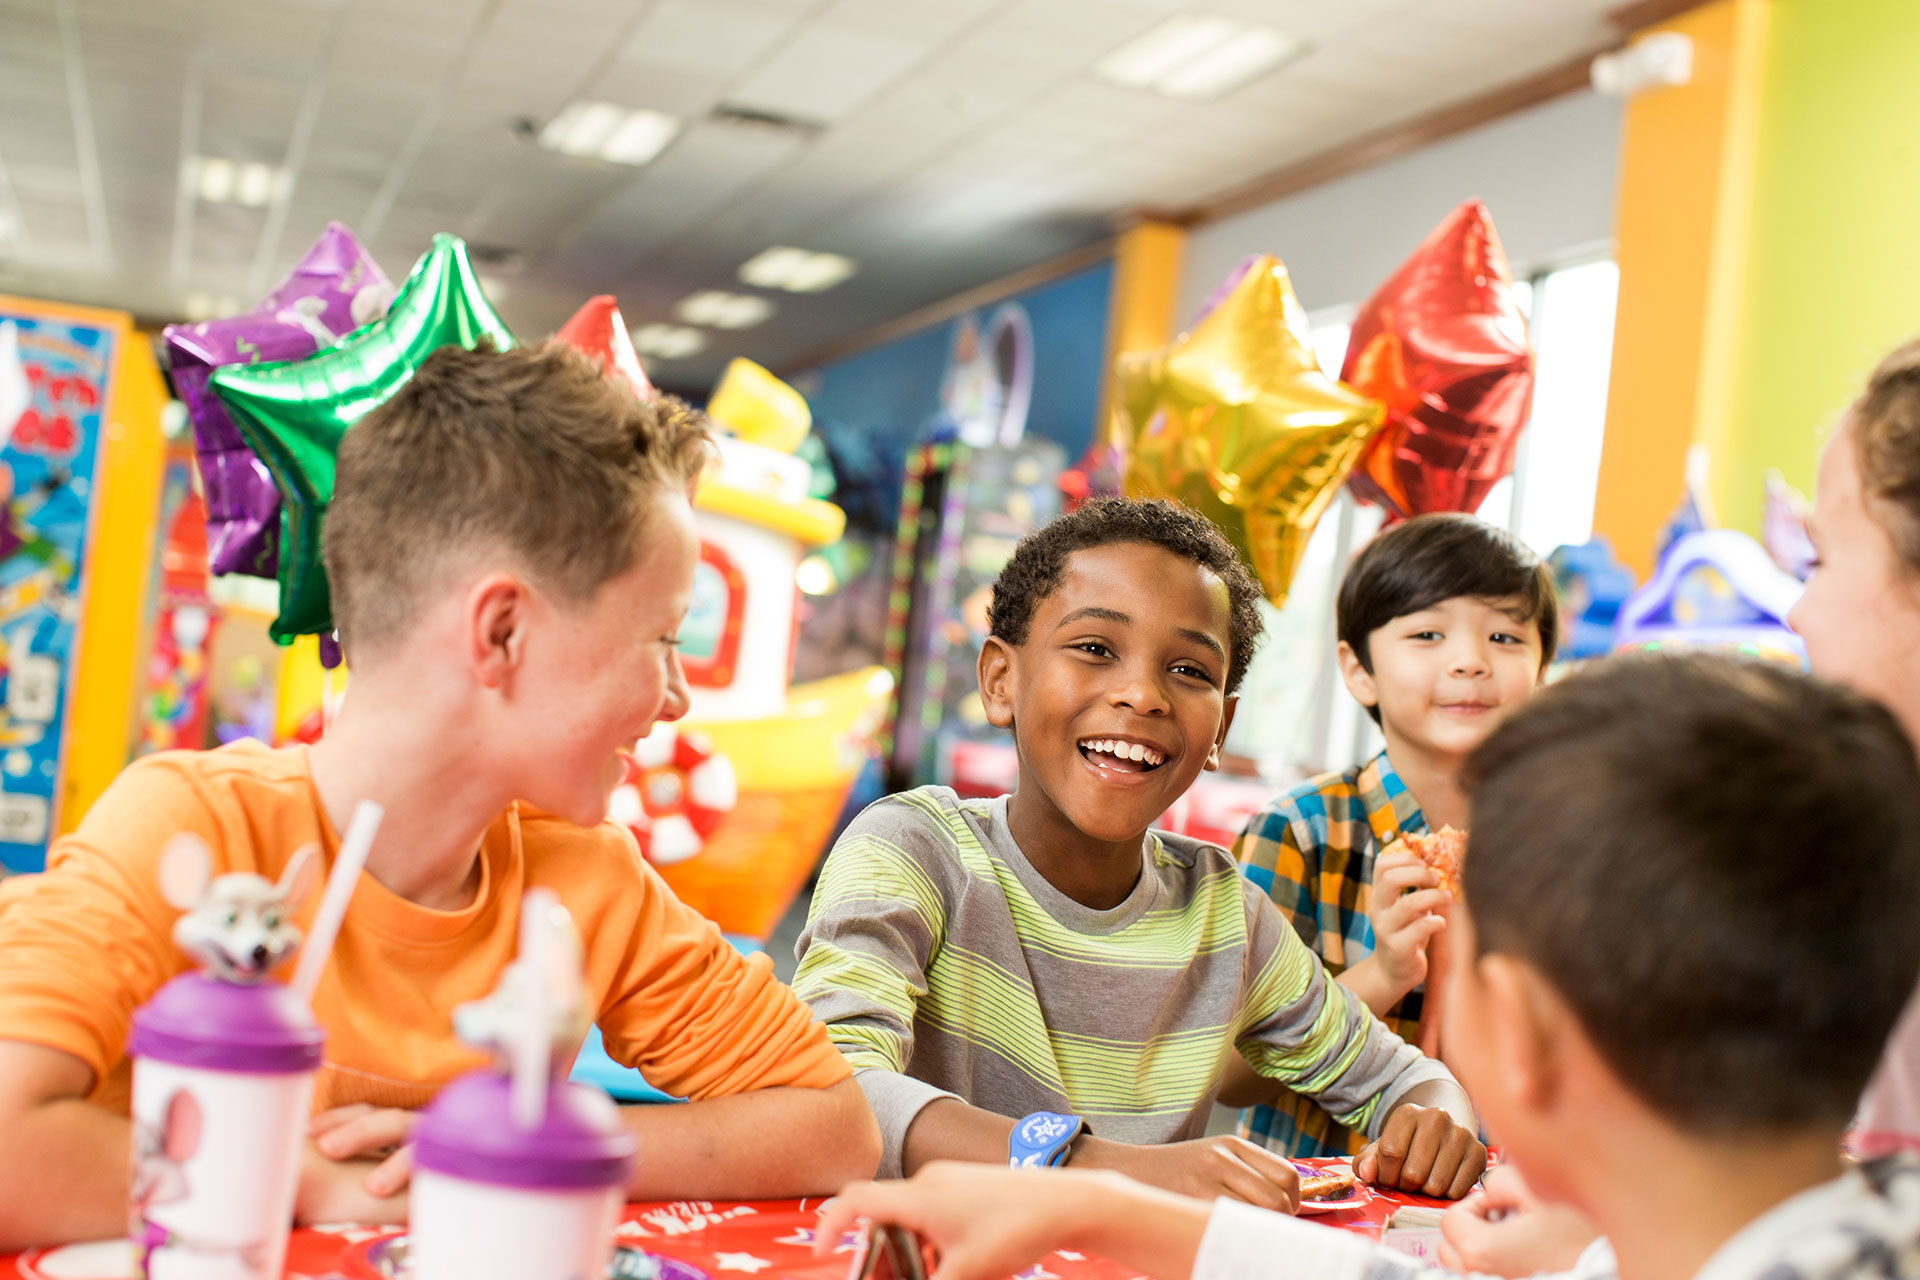 Kids around a table with balloons in the background